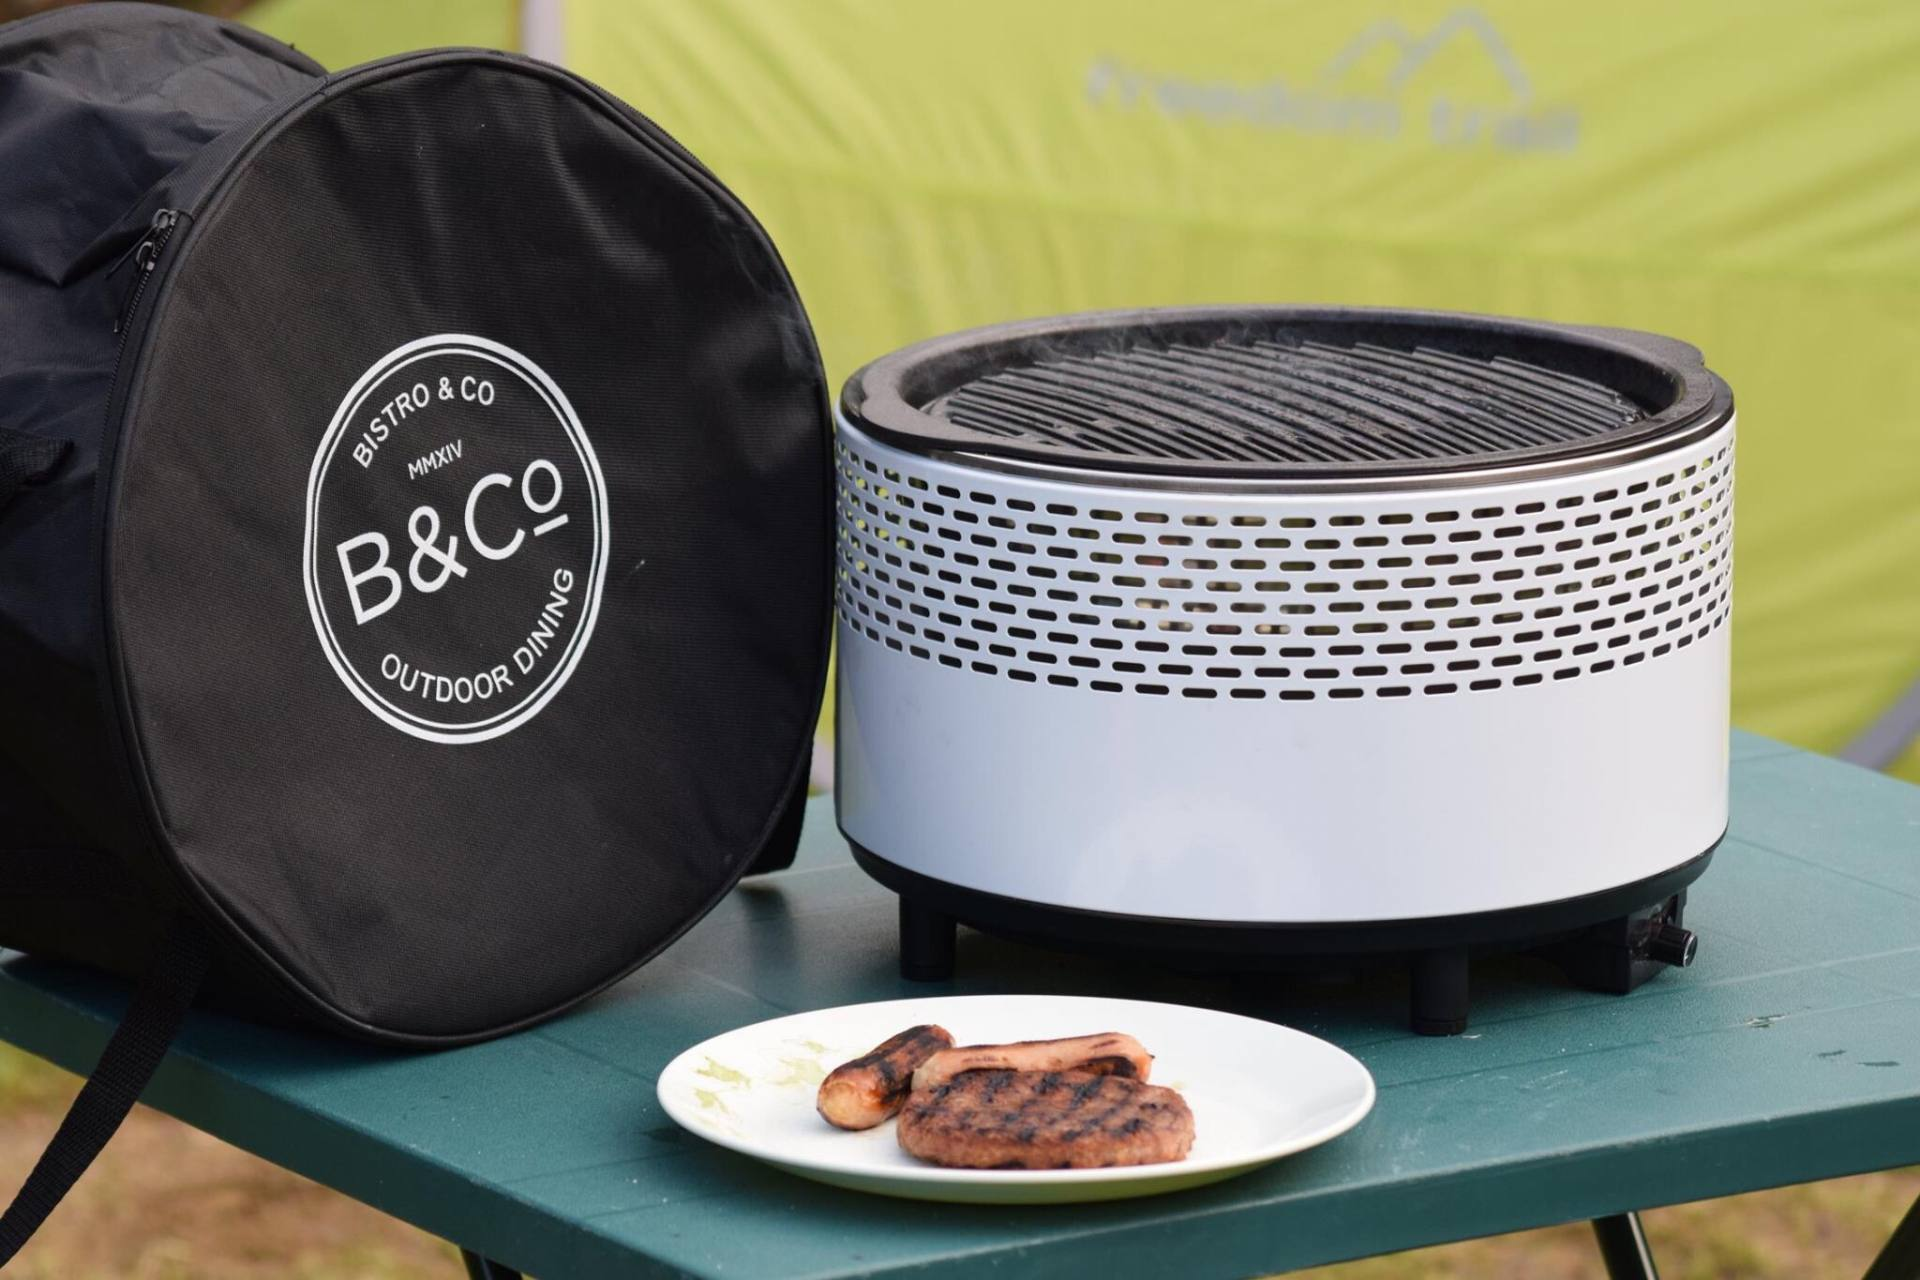 Summit B&Co Alfresco Smokeless BBQ Grill Review, img 9397%, product-review%